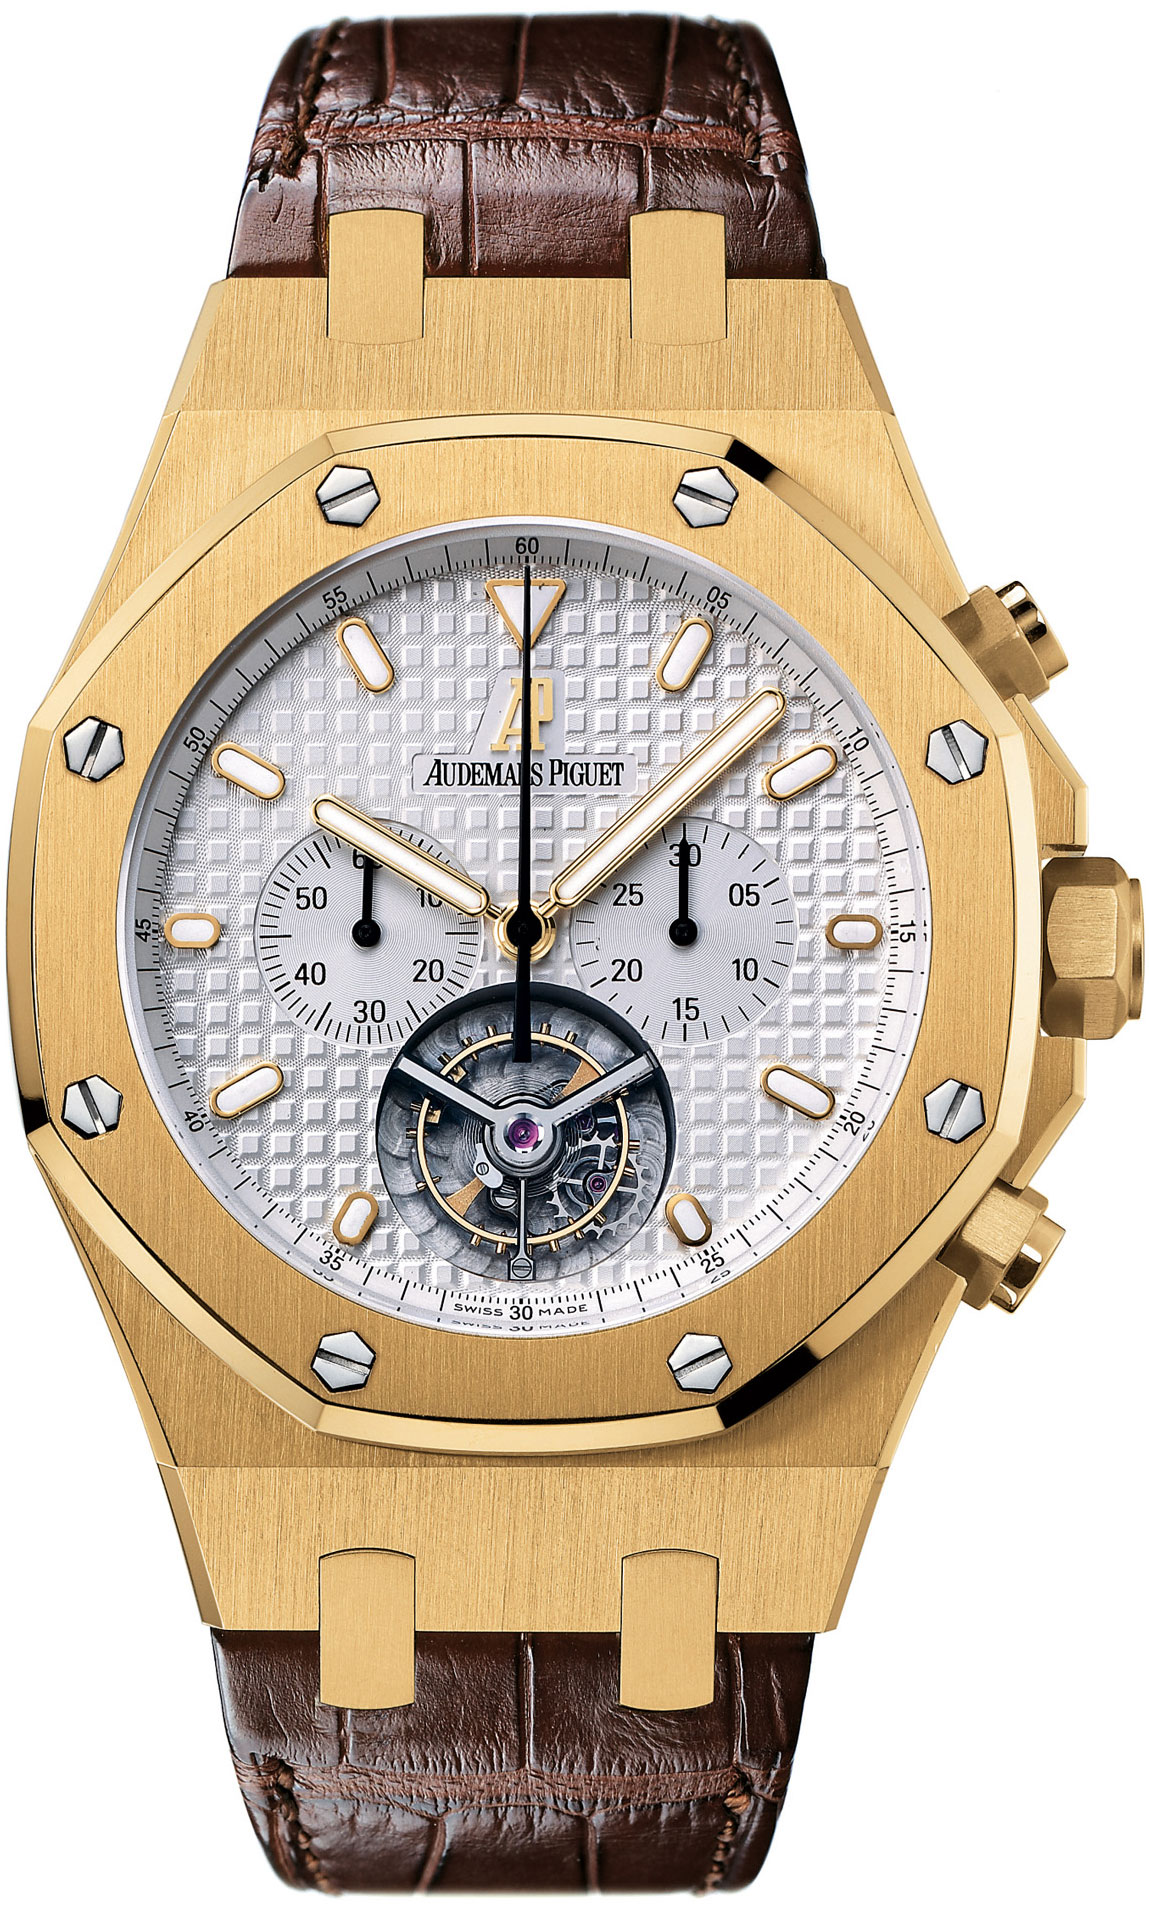 Audemars Piguet Royal Oak Chrono Tourbillon Men S Watch Model 25977ba Oo D088cr 01